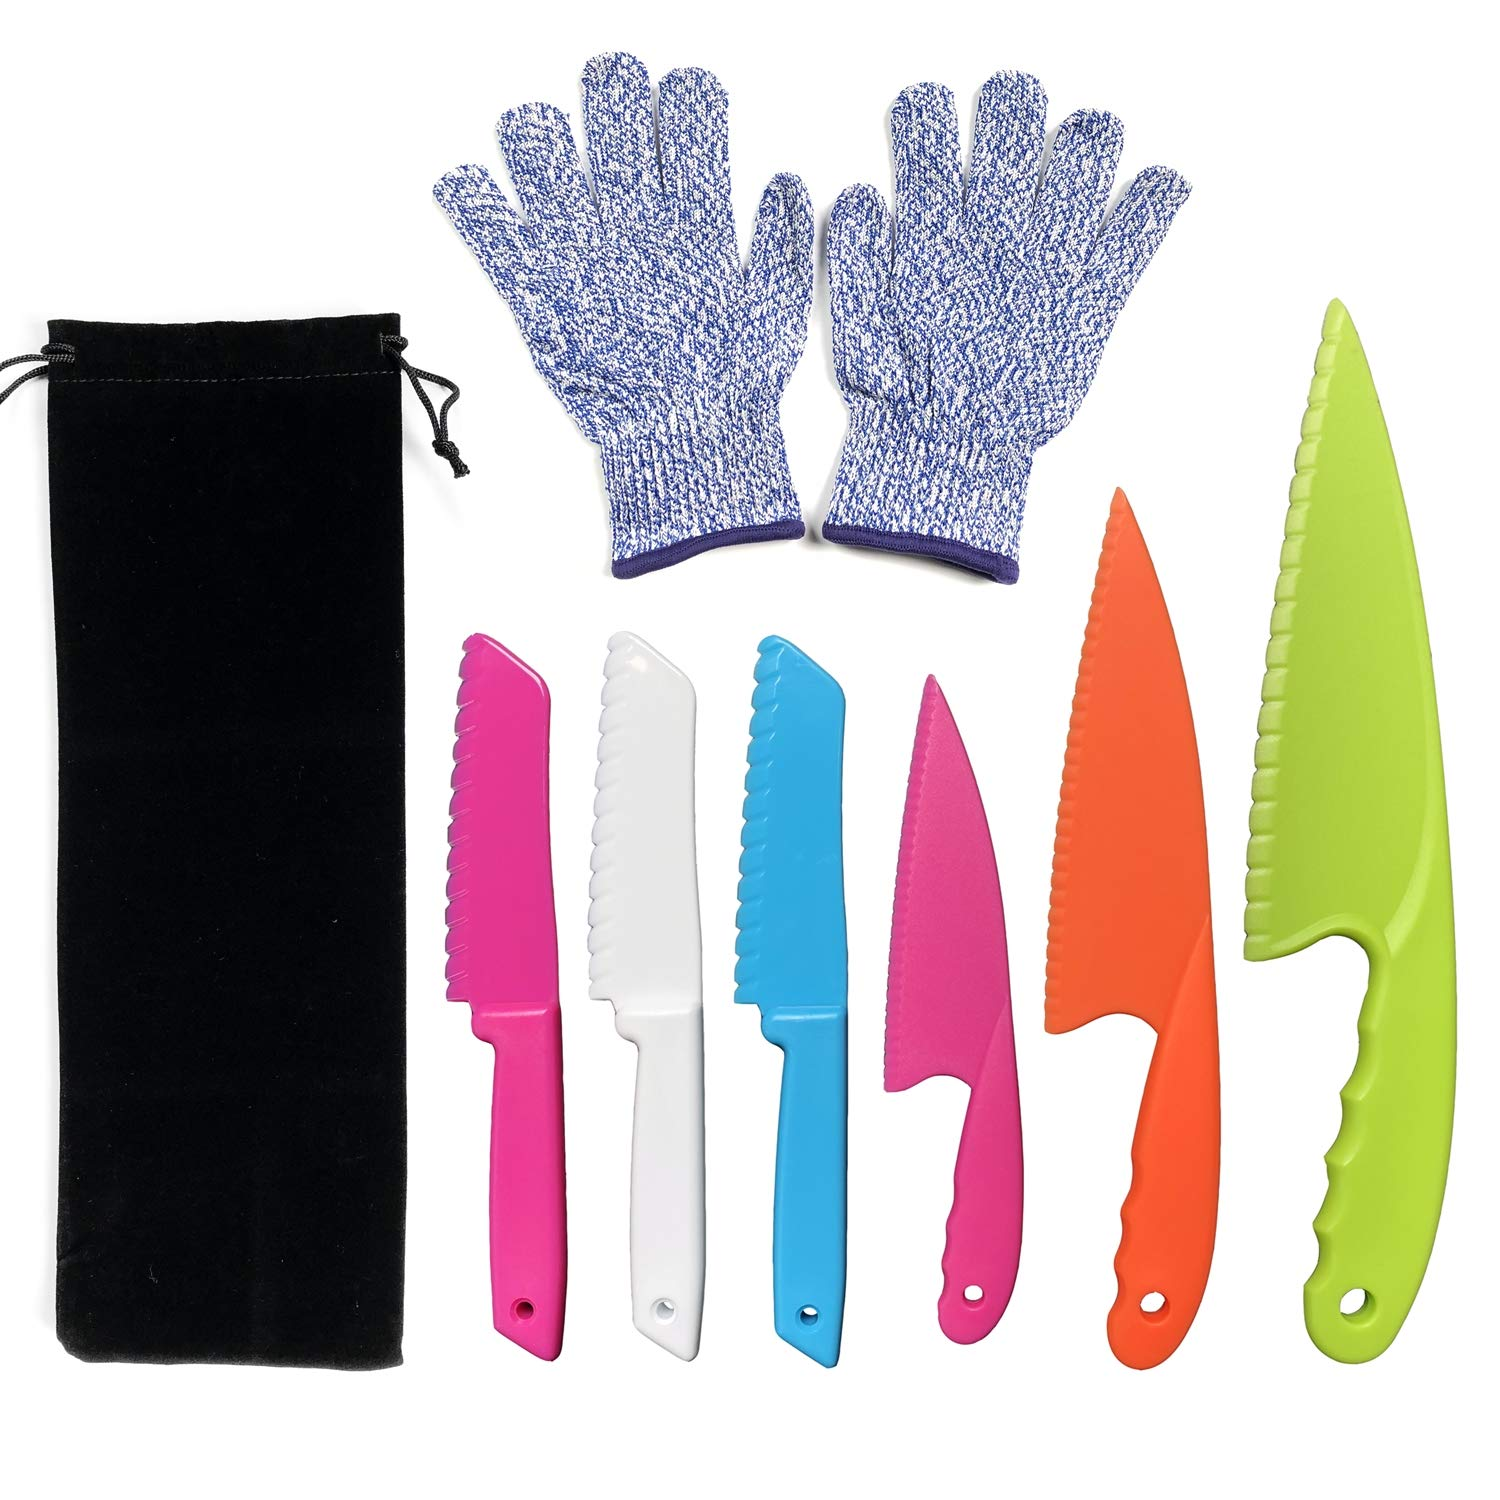 CCUT 6 Pieces Kid Plastic Kitchen Knife Set Children's Safe Cooking Knives Set with Cut Resistant Gloves (Ages 6-12) Kids Safe Knife for Fruit, Bread, Cake, Lettuce, Salad (Multi-color 1)